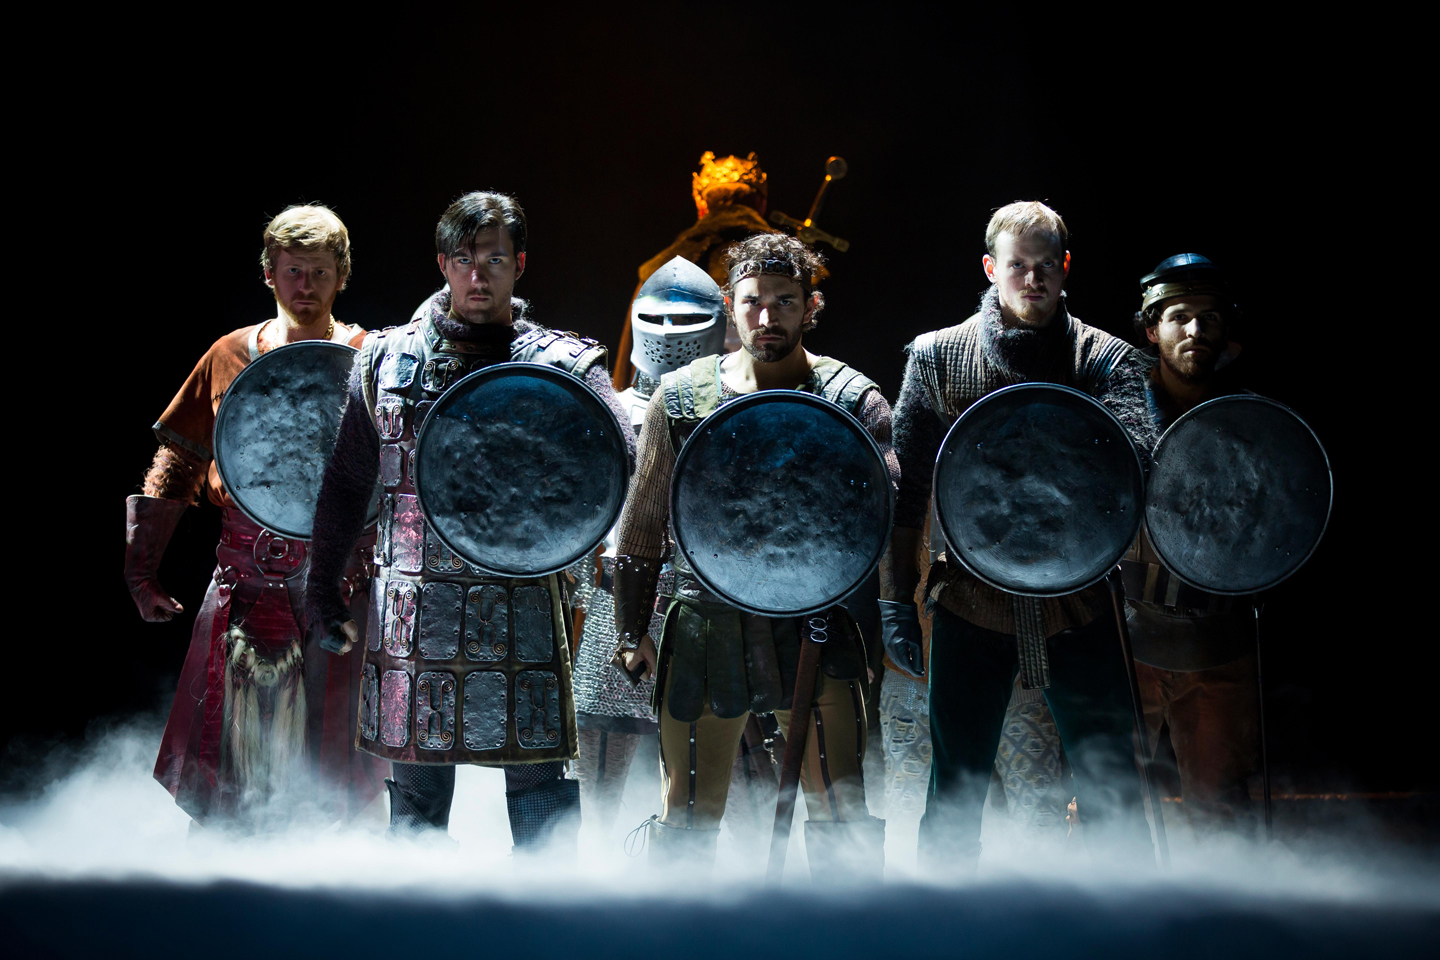 National Tour of Camelot Brings Chivalry, Knighthood and Medieval Pageantry to Starlight Theatre on June 9-14